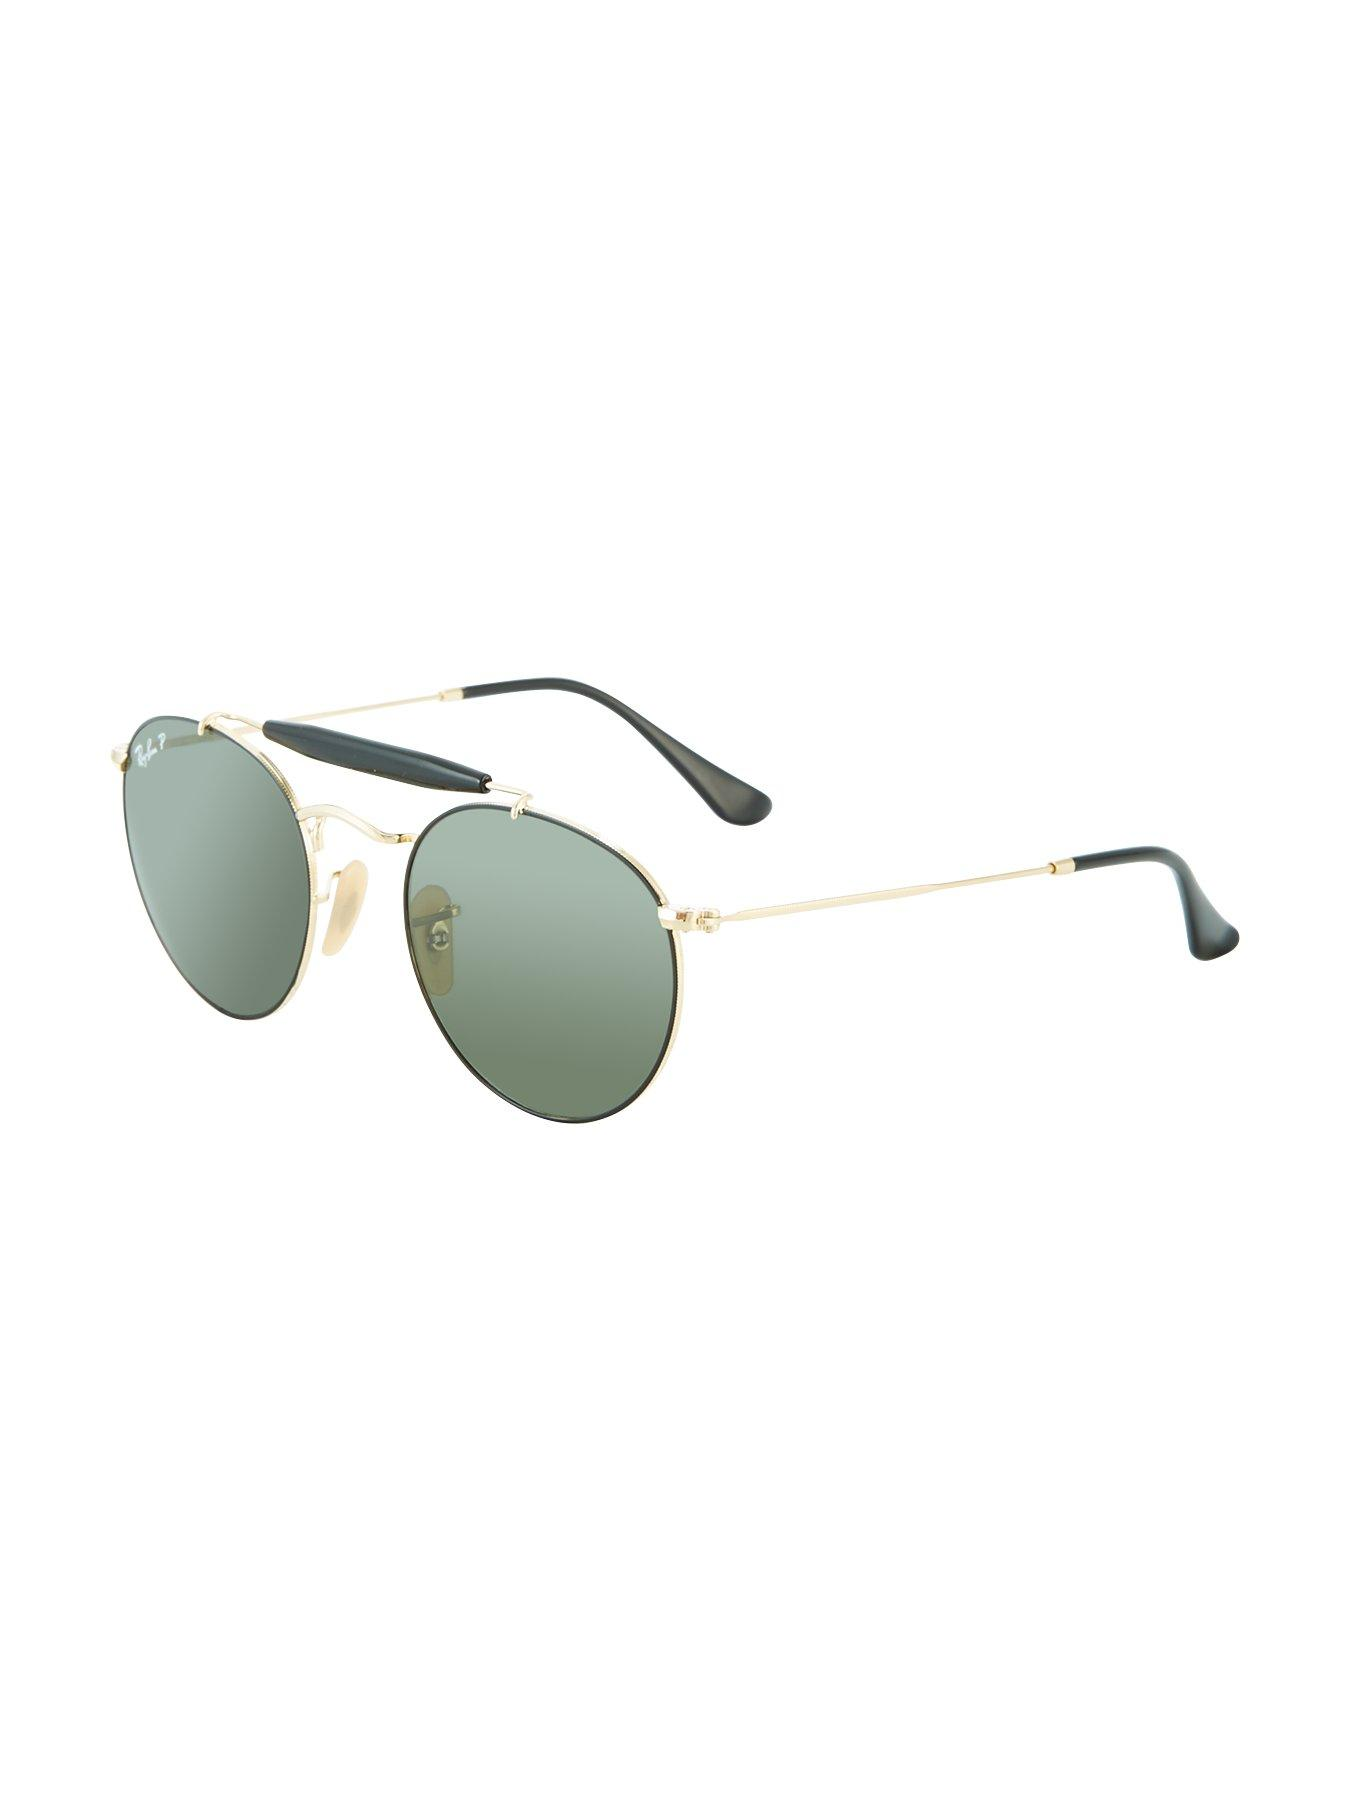 Ray Ban Glasses Frames Ireland : Ray-Ban Rayban Outdoorsman Sunglasses littlewoodsireland.ie